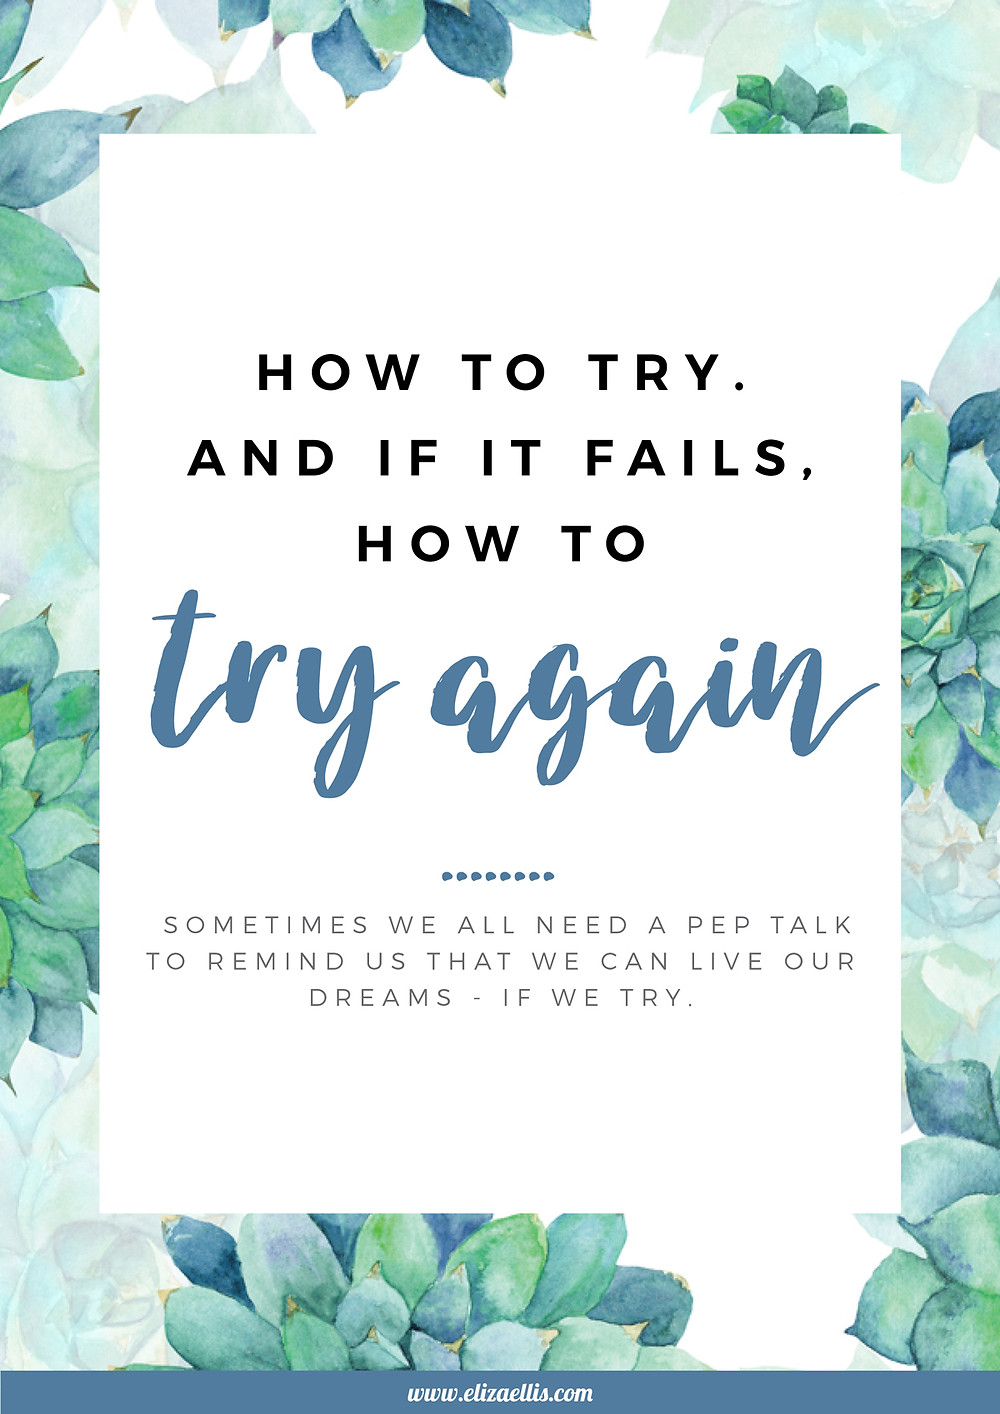 How to try. And if it fails, how to try again. // Eliza Ellis // try your best, positive affirmations, inspiring stories, inspirational people, failure, overcoming failure, mental health, fear of failure, how to fail, motivation, drive and direction, try again, wisdom quotes, wisdom, how to grow, self care, self care ideas, self care for women, growing up, mental health, mental health tips, coping skills, mental health recovery, wellness habits, wellness inspiration